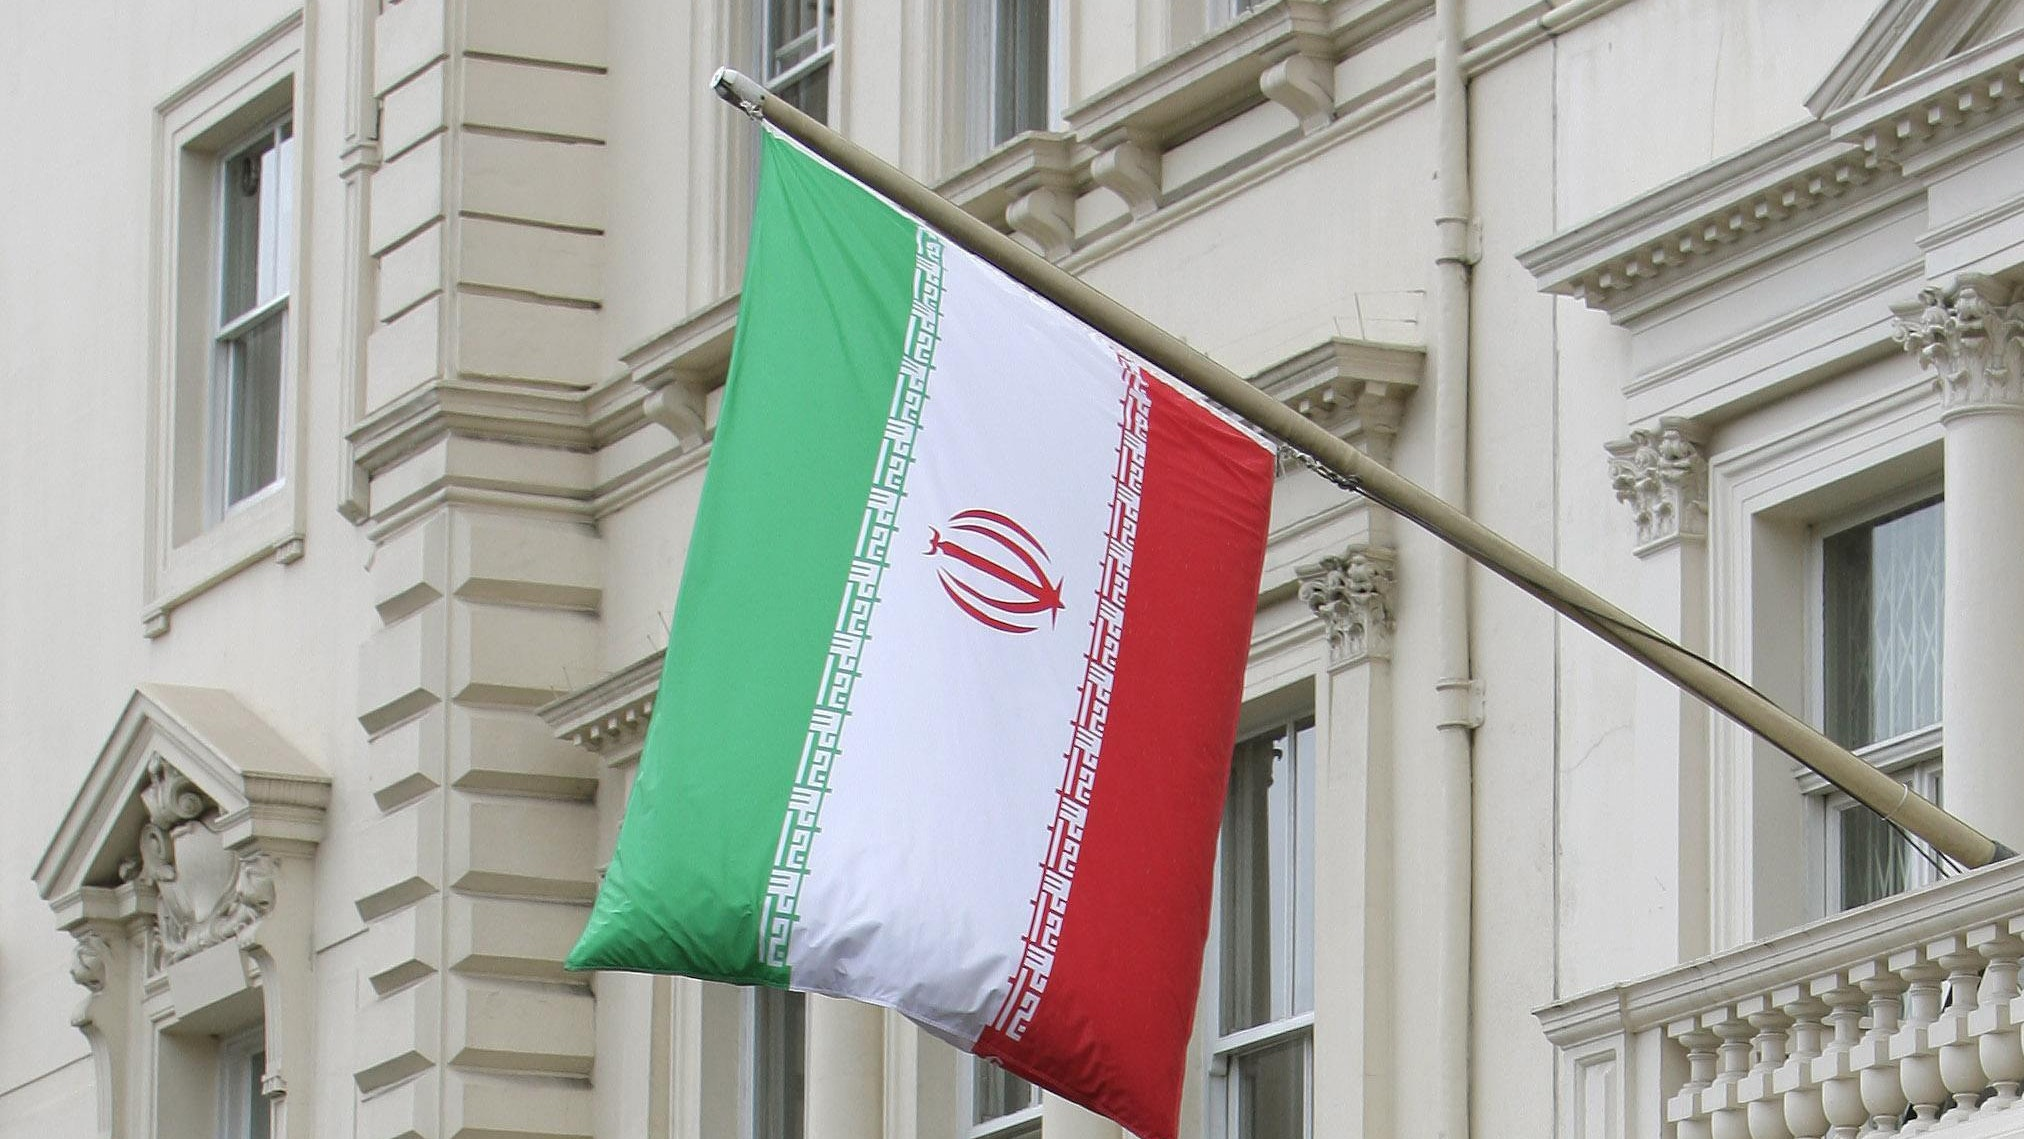 Iran: dual national gets 6 years in jail over spying